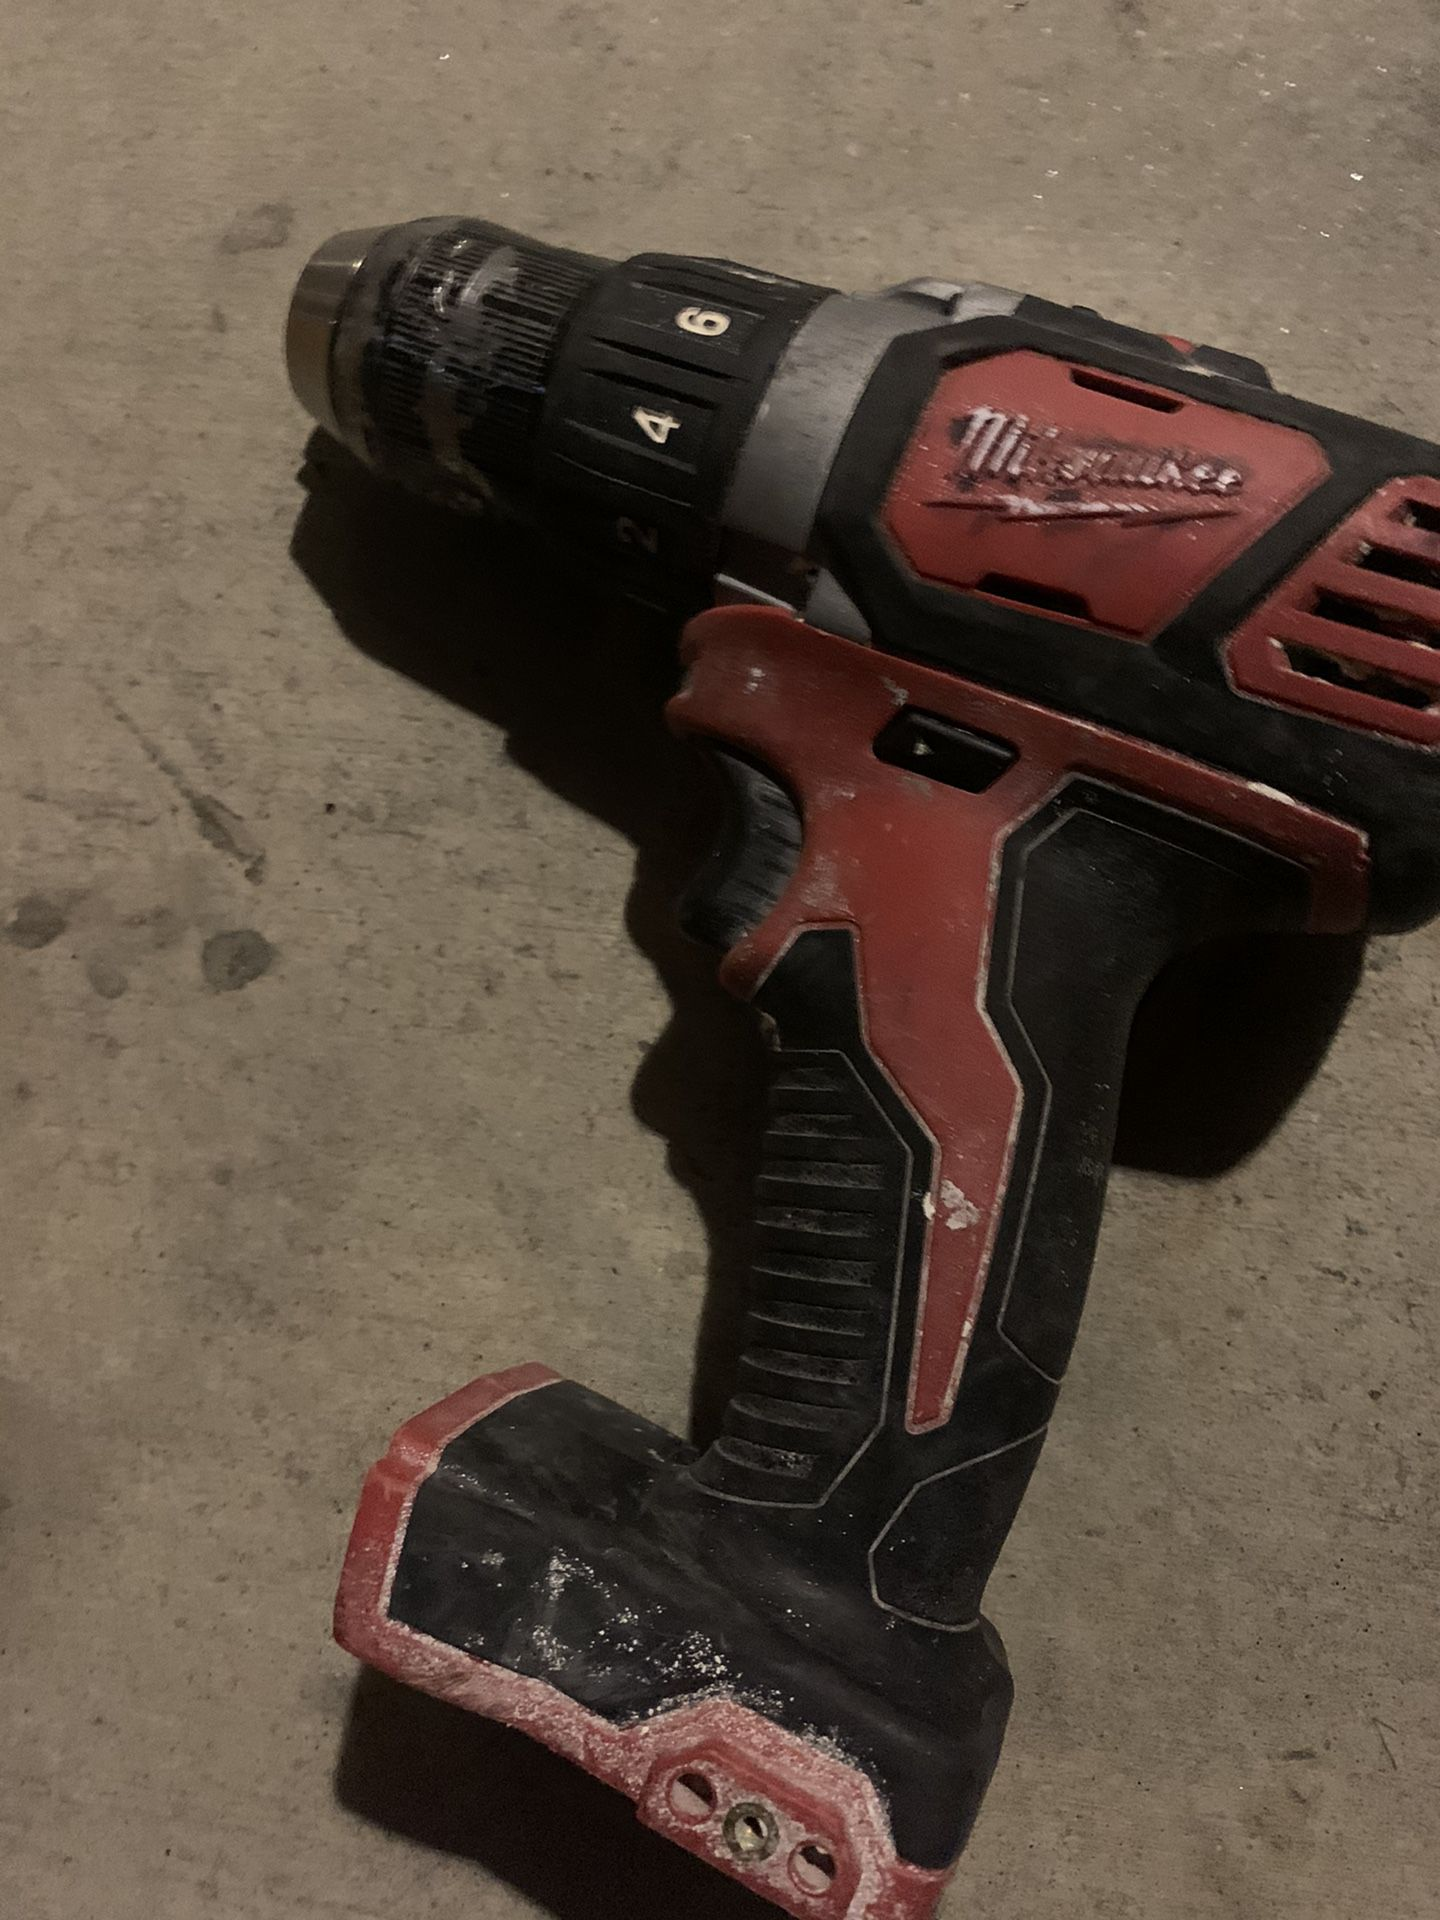 Milwaukee saw Nd drill asking 50$ firm sold as is we can test before buying